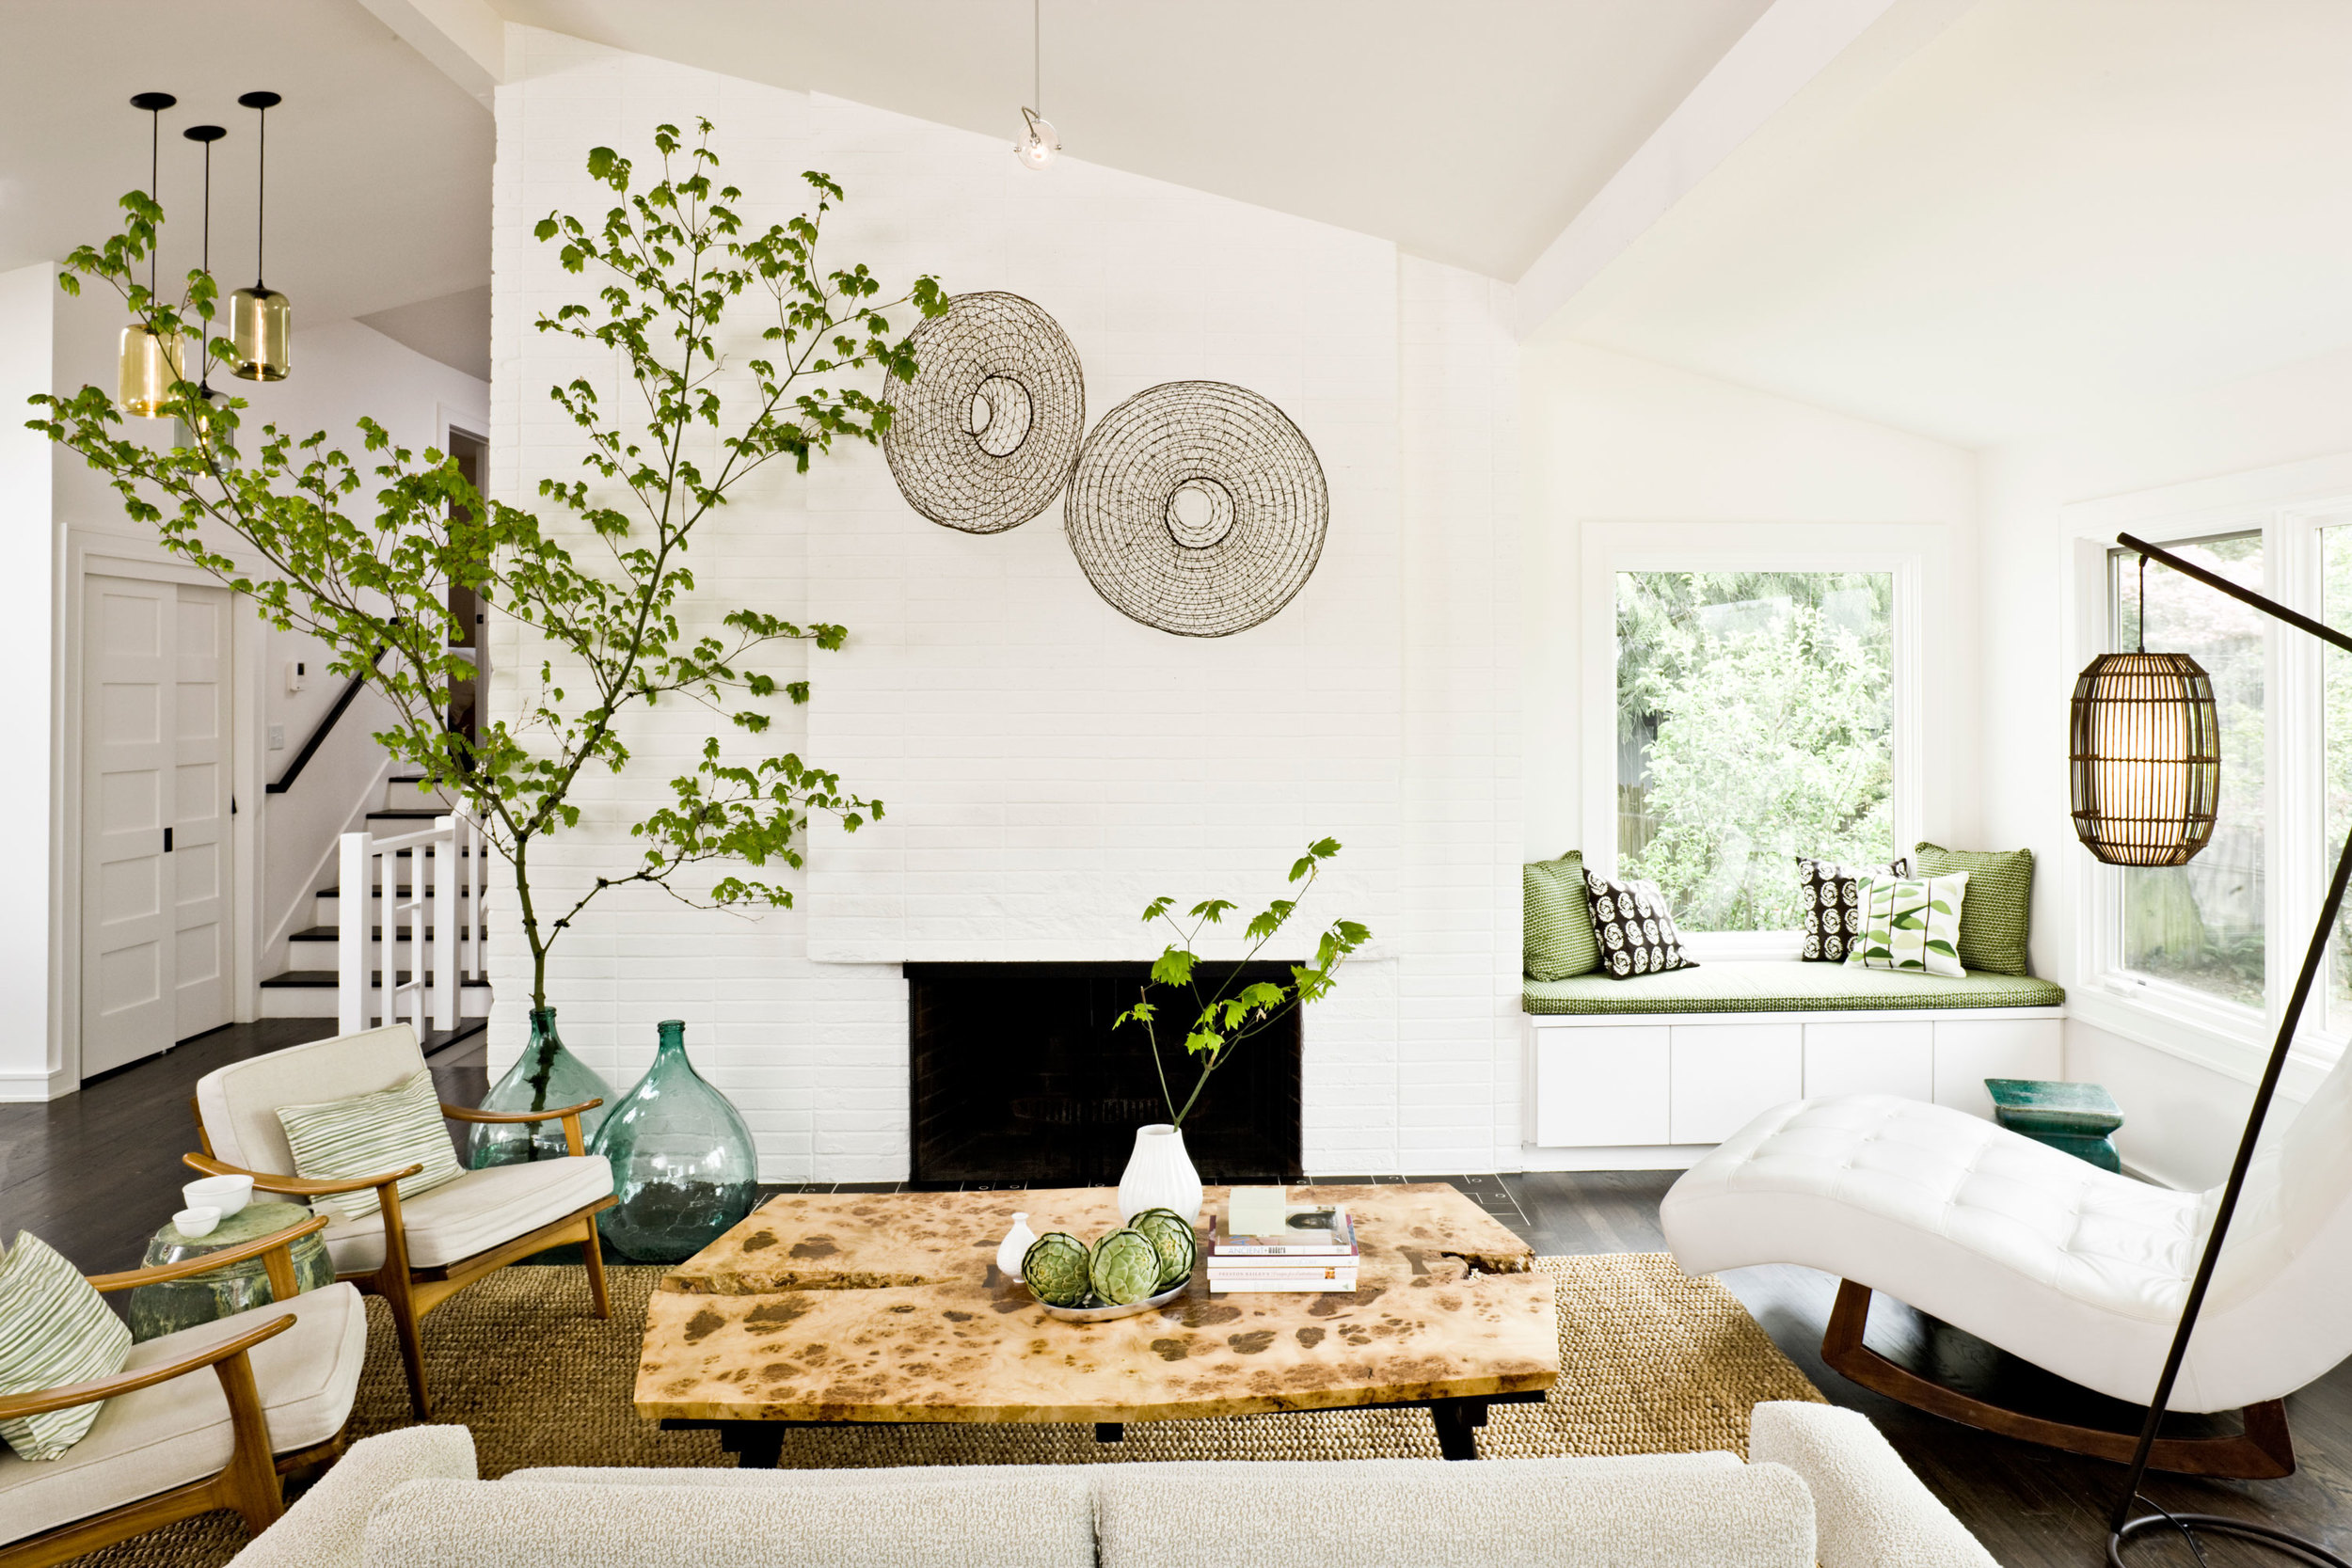 Choosing the Perfect Room Colour in the Feng Shui Way